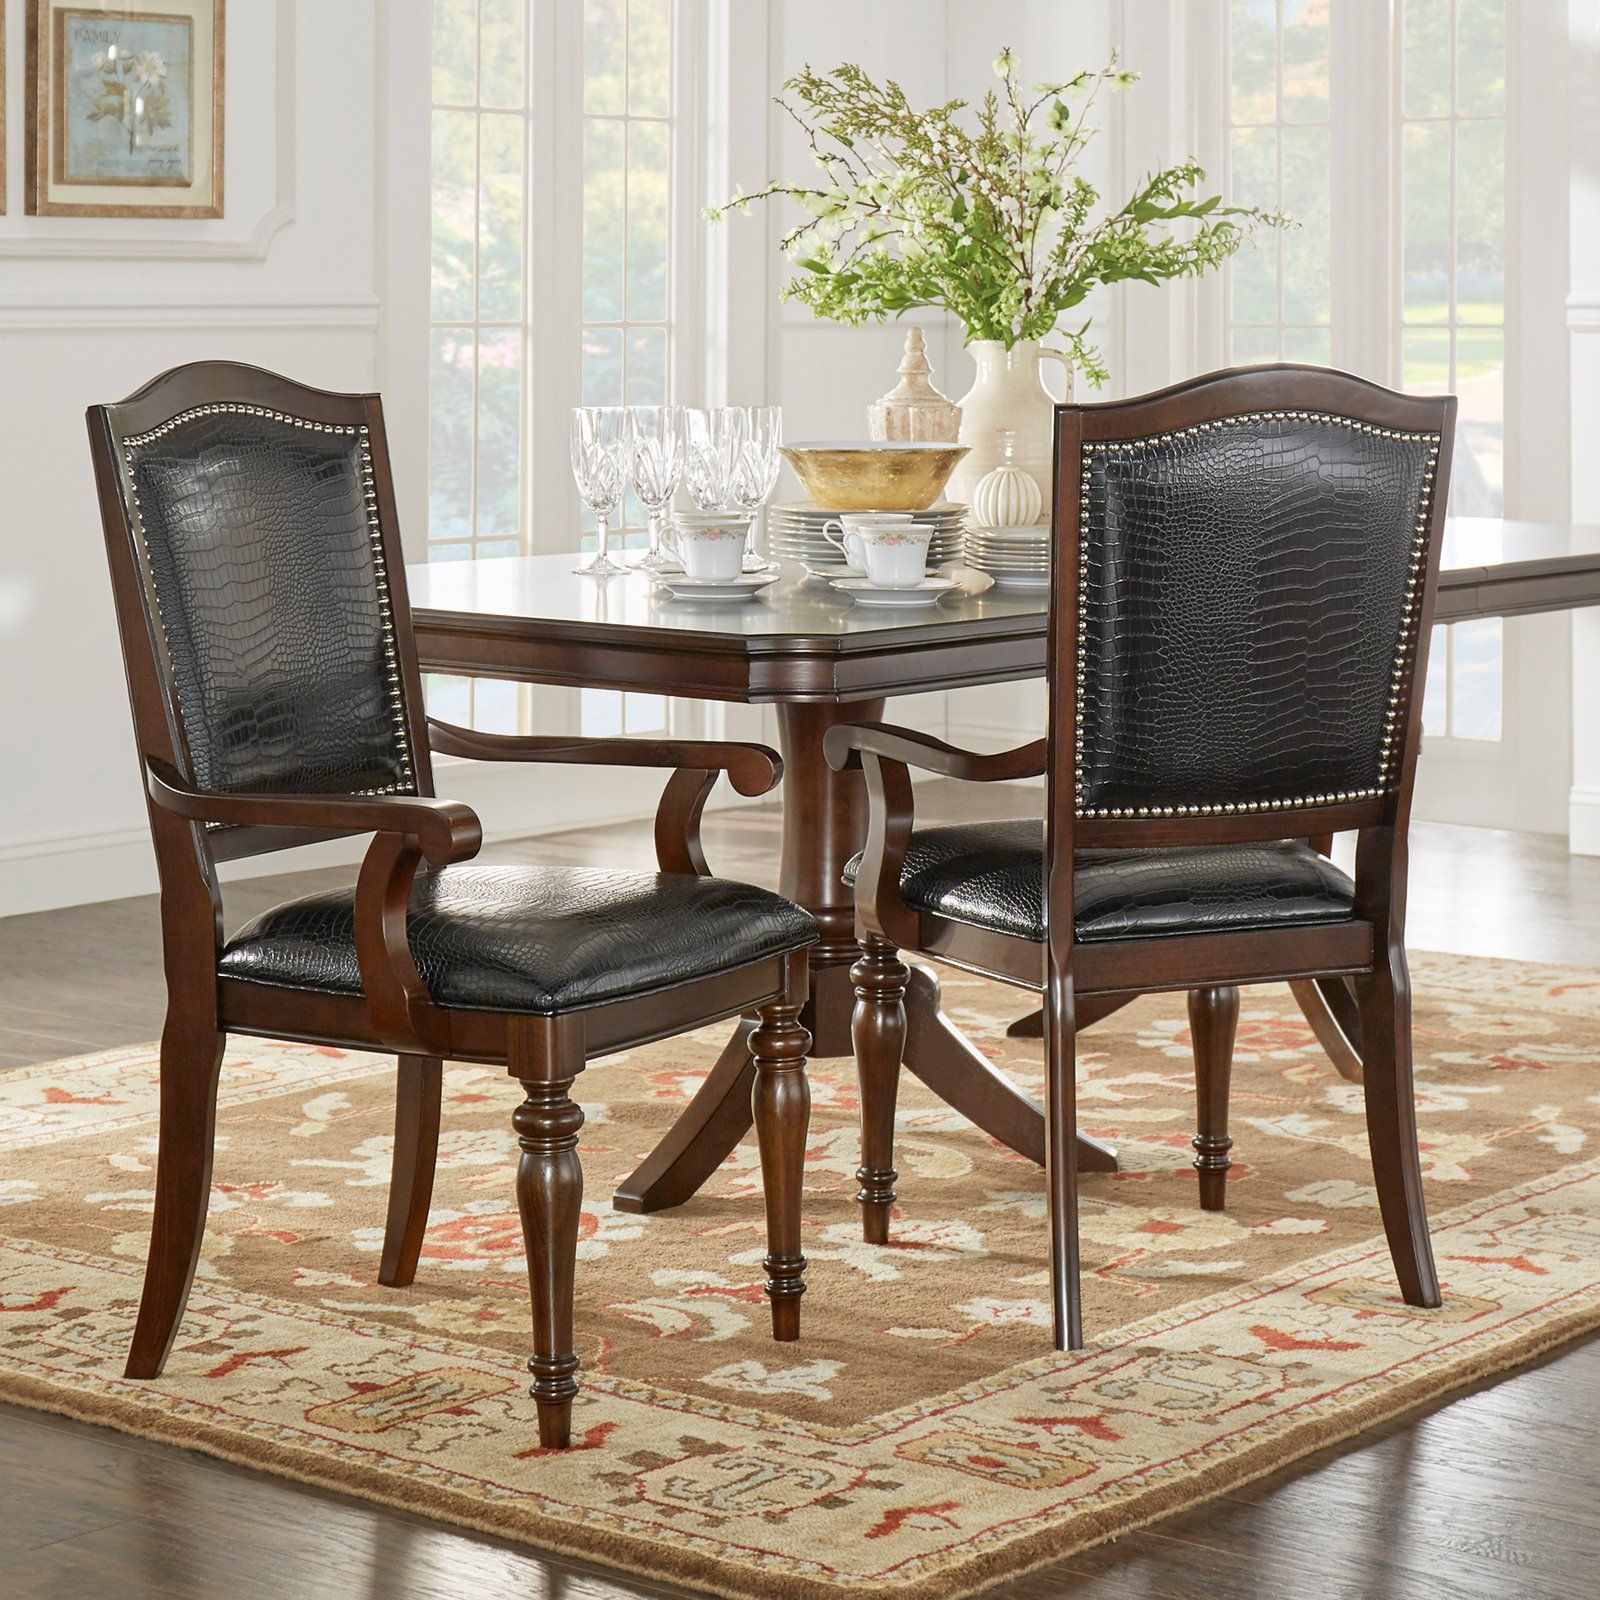 Nailhead dining chairs dining room Grey Homelegance Marston Alligator Faux Leather Nailhead Dining Arm Chair Set Of Kitchen Dining Room Chairs At Hayneedle Pinterest Homelegance Marston Alligator Faux Leather Nailhead Dining Arm Chair